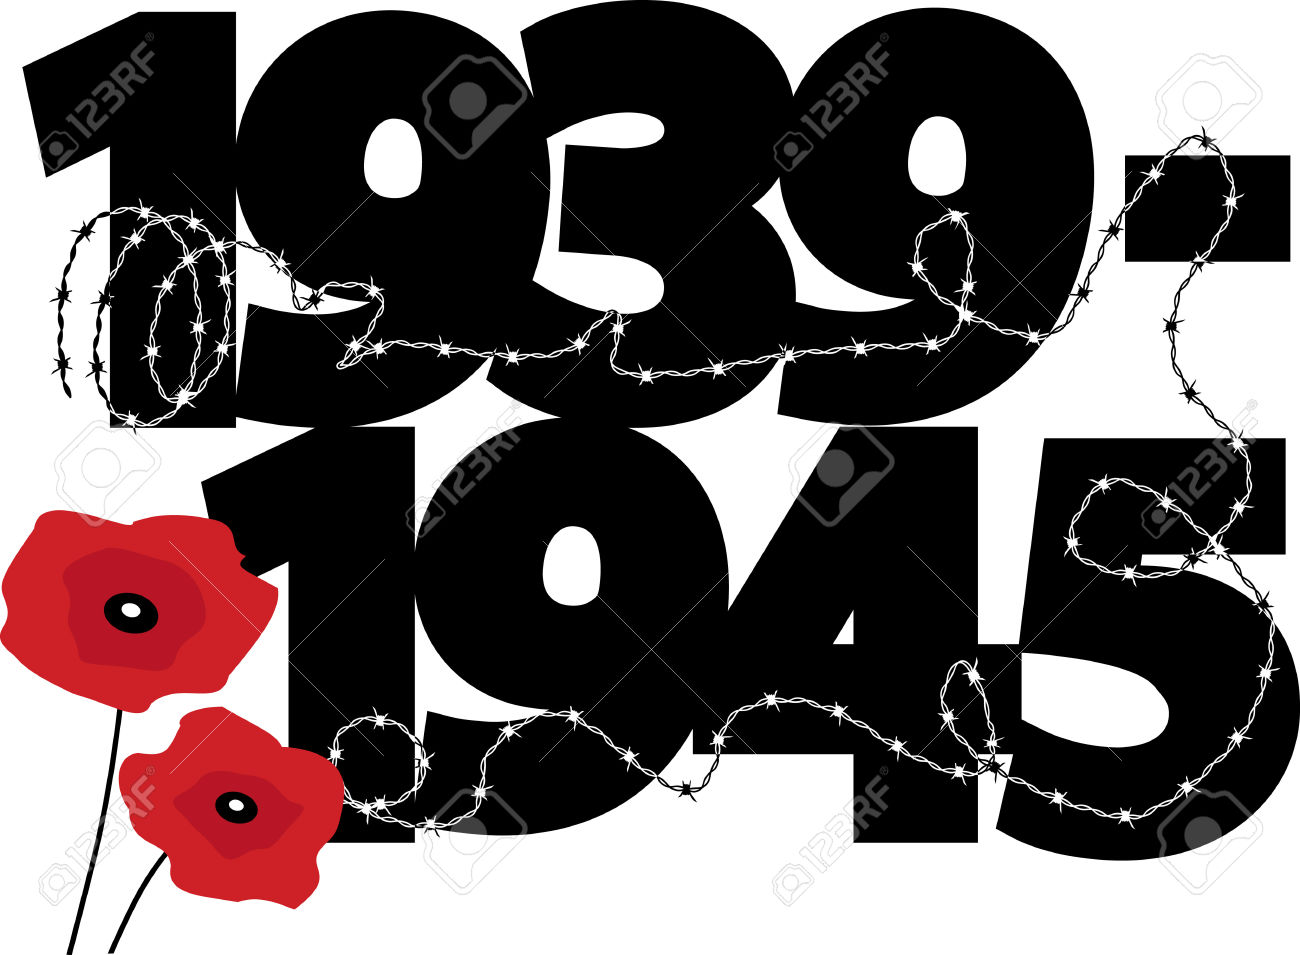 World War II Commemorative Symbol With Calendar Dates, Poppies.